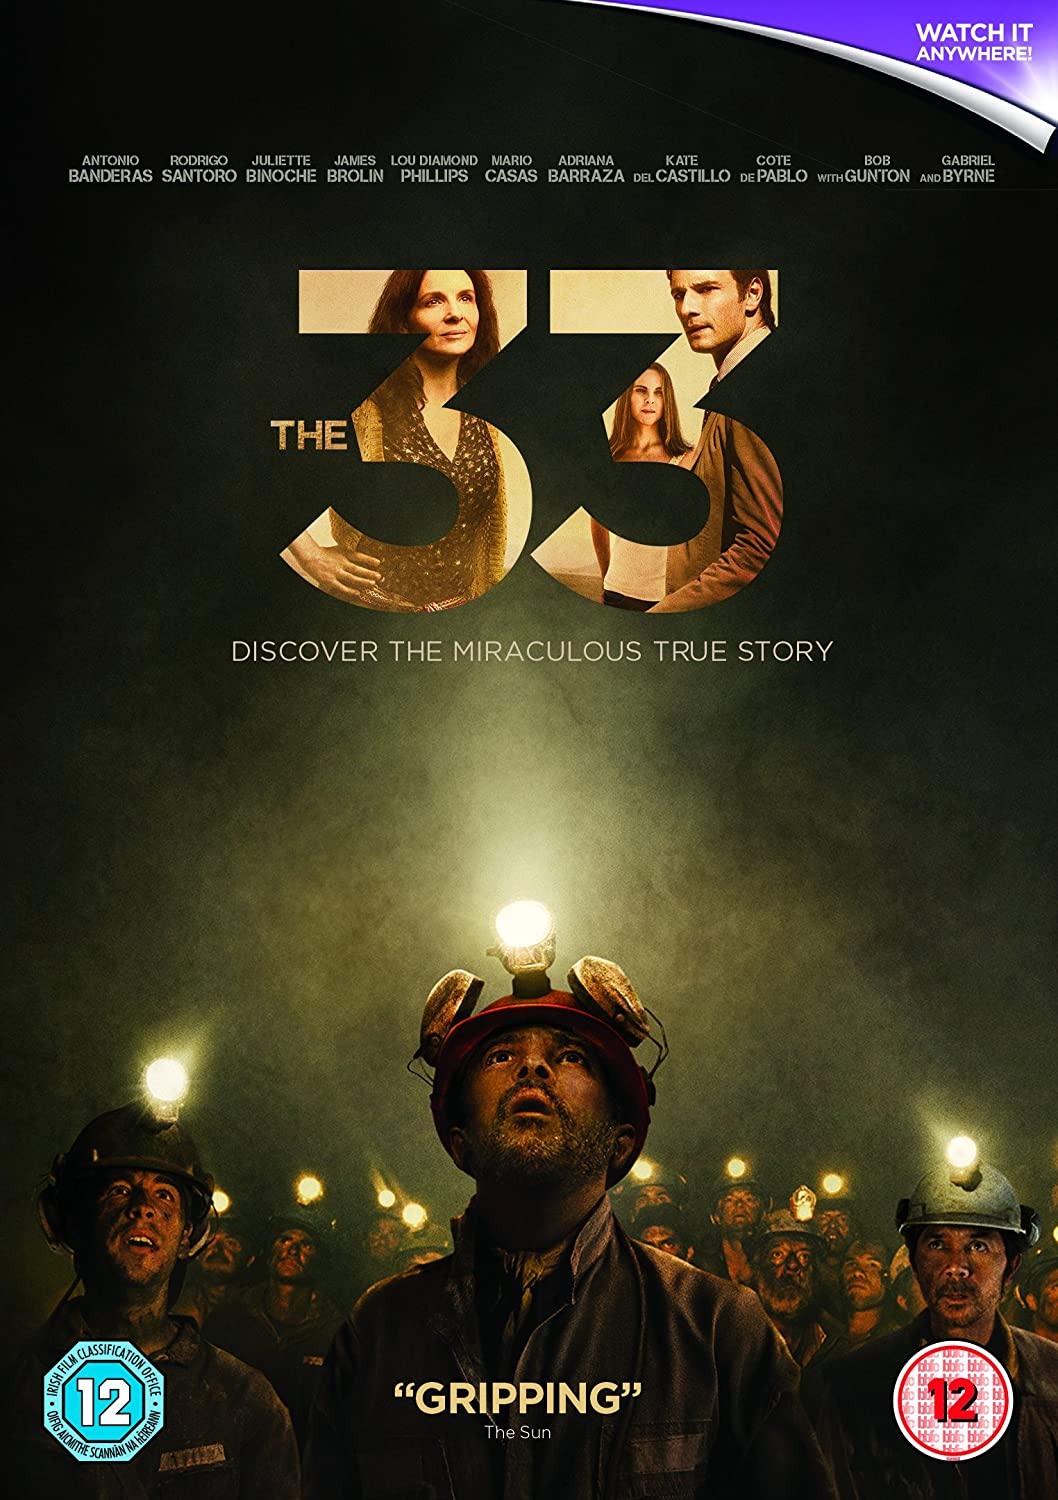 The 33